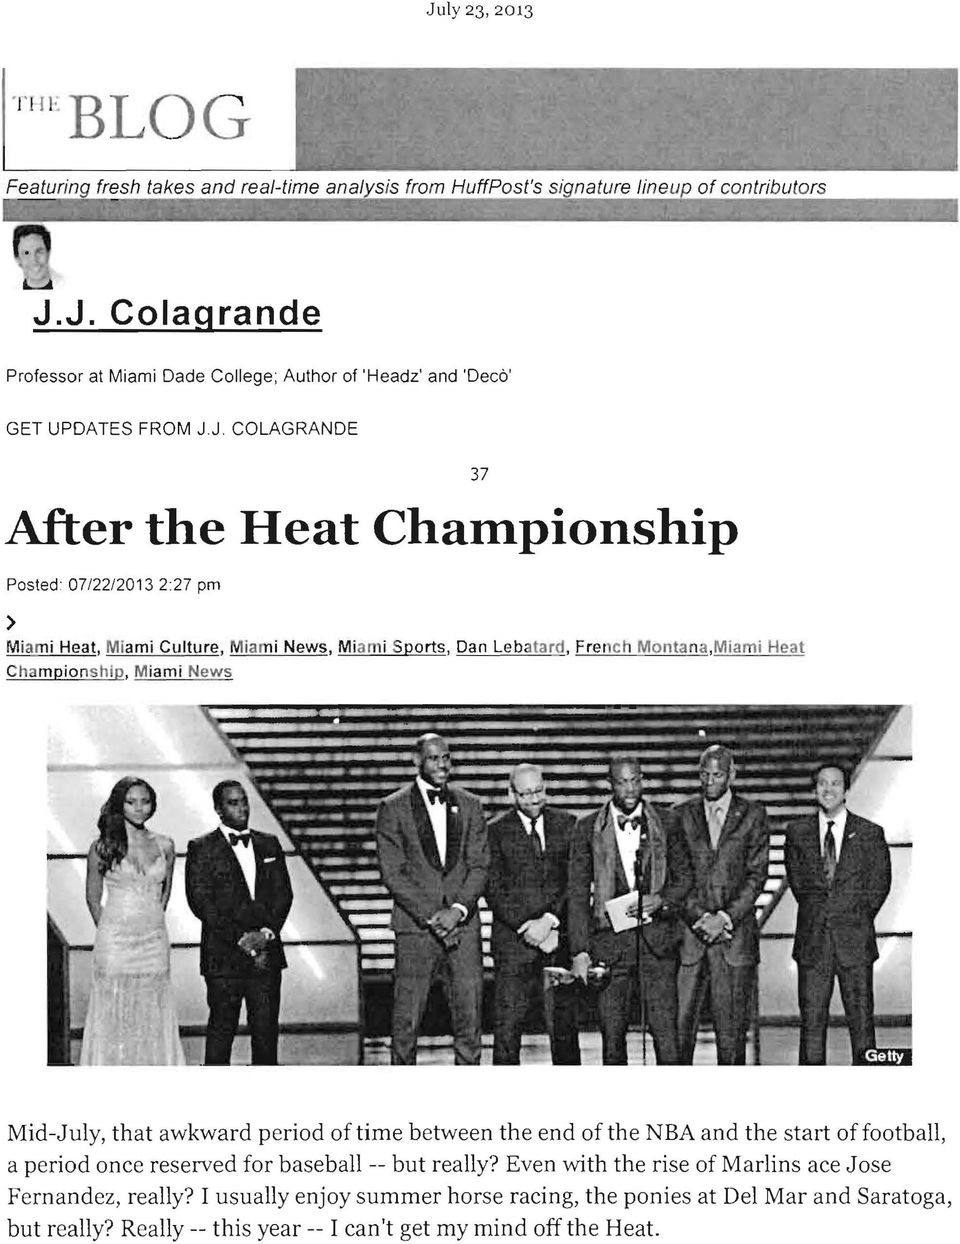 mpionship, Miami News Mid-July, that awkward period of time between the end of the NBA and the start of football, a period once reserved for baseball -- but really?